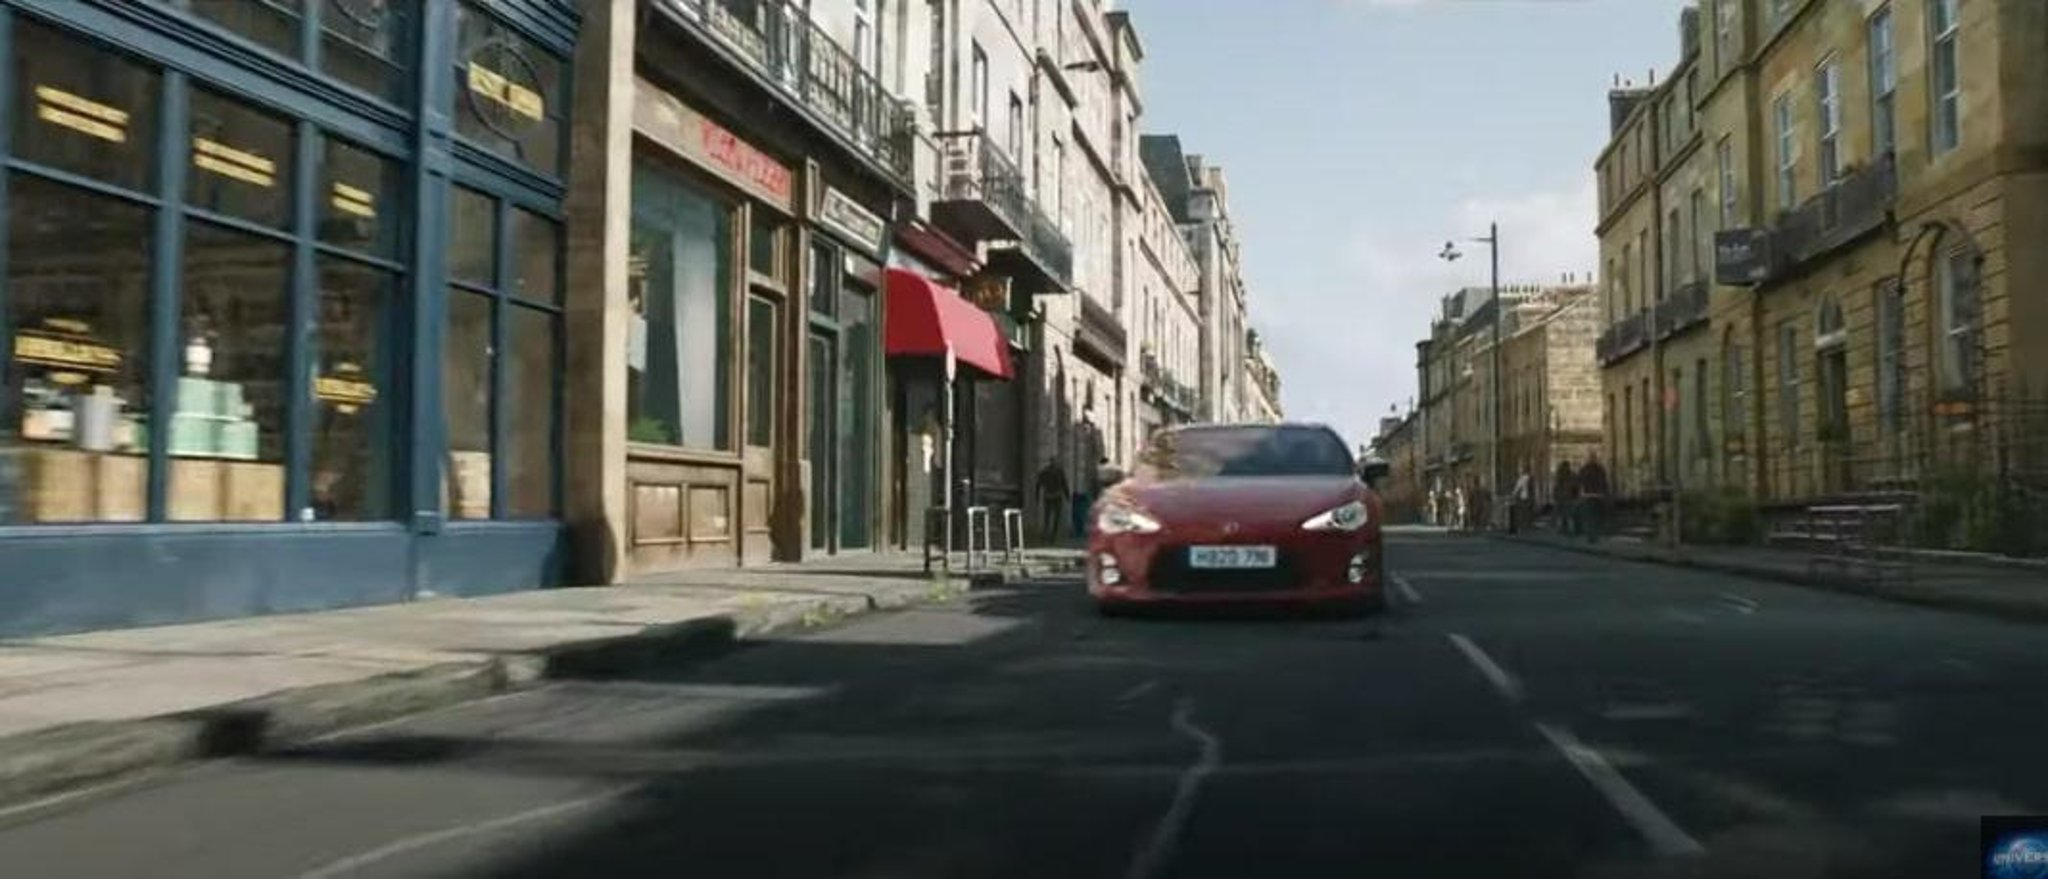 An Edinburgh location features in the Fast and Furious 9 'TOTAL CAR-NAGE'  sneak peek trailer